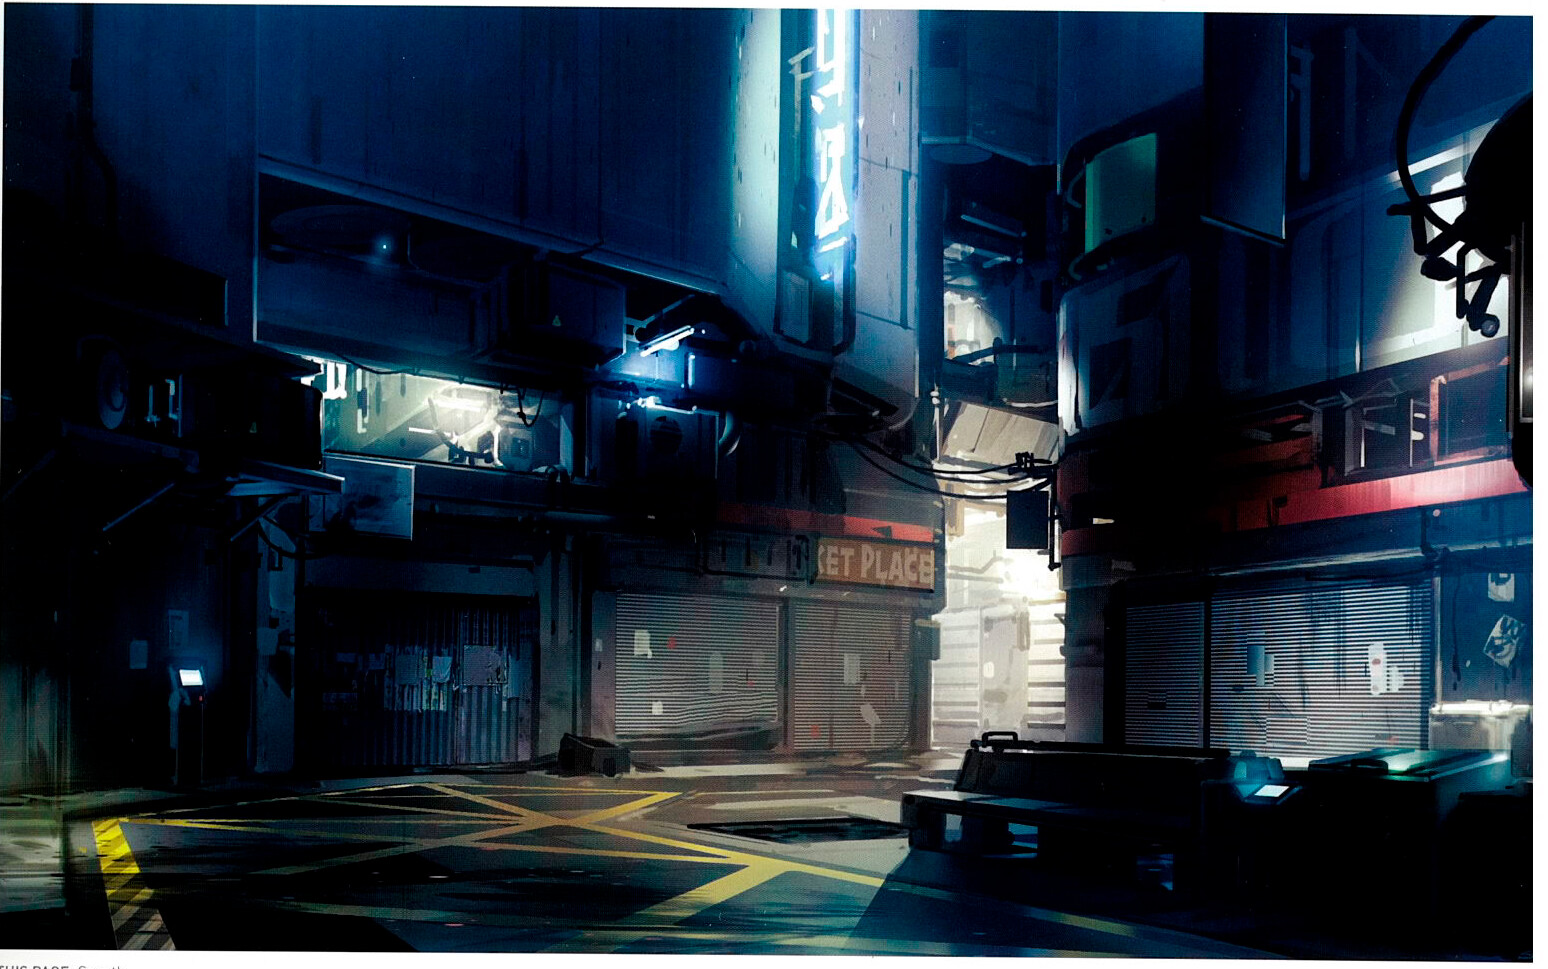 Concept art from 'The Art of Halo 5'.